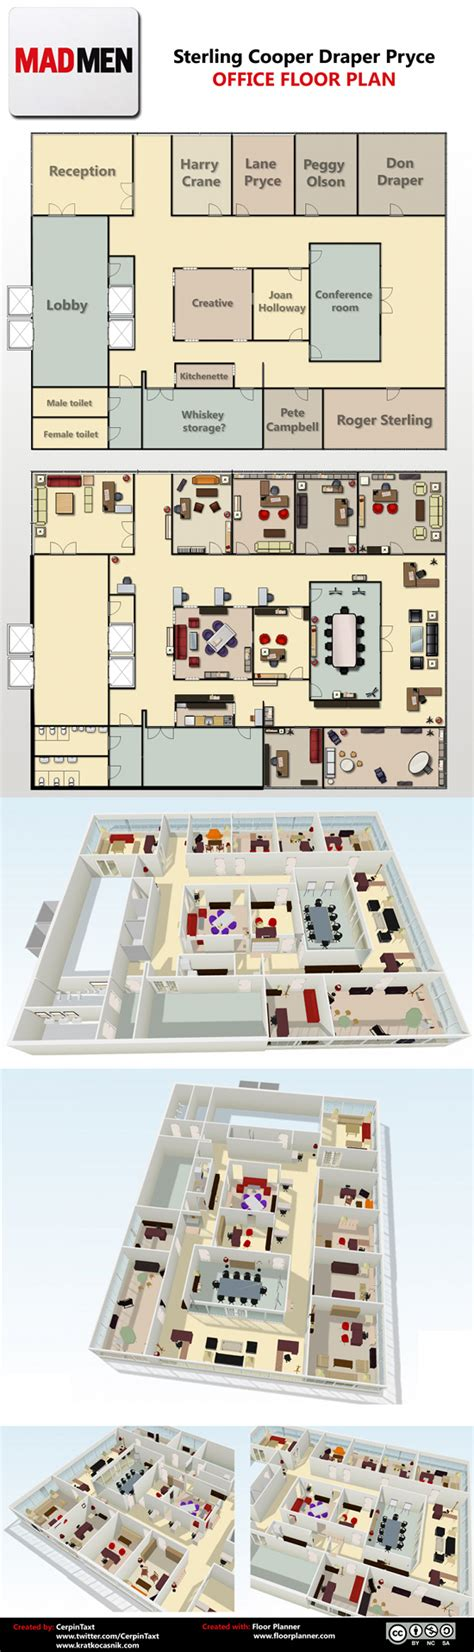 men floor plan mad men office floor plan